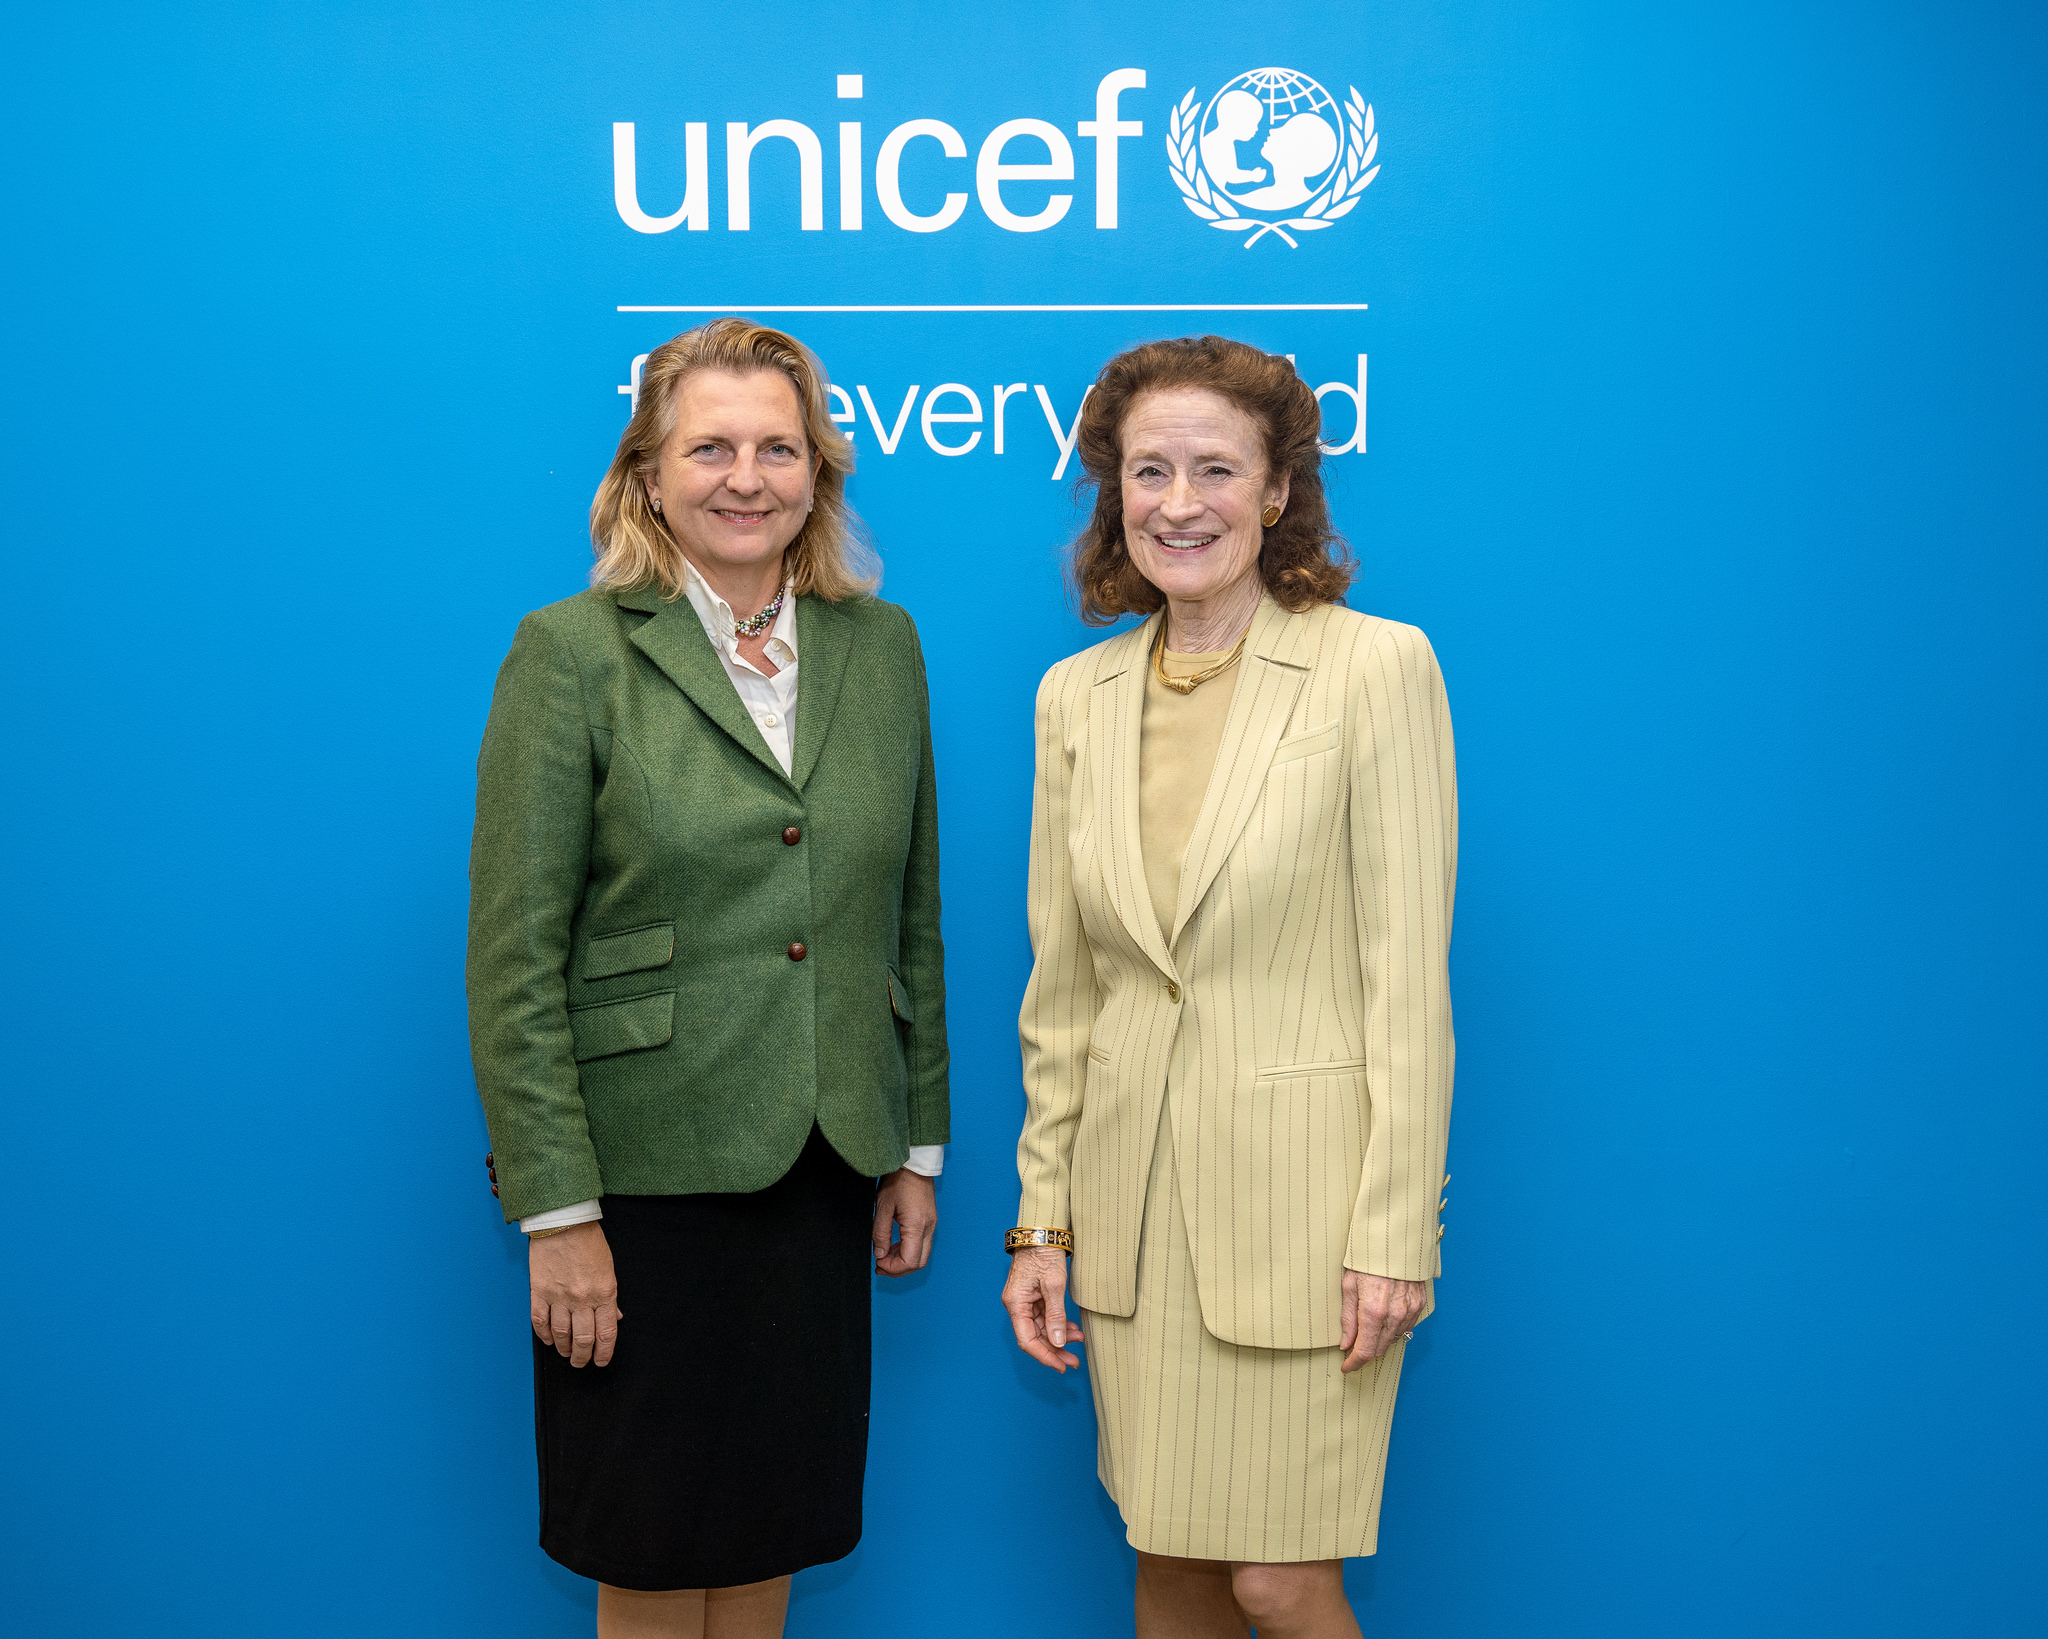 Foreign Minister Karin Kneissl meets with Executive Director of the United Nations Children's Fund, Henrietta Fore (c) Austrian Ministry of Foreign Affairs